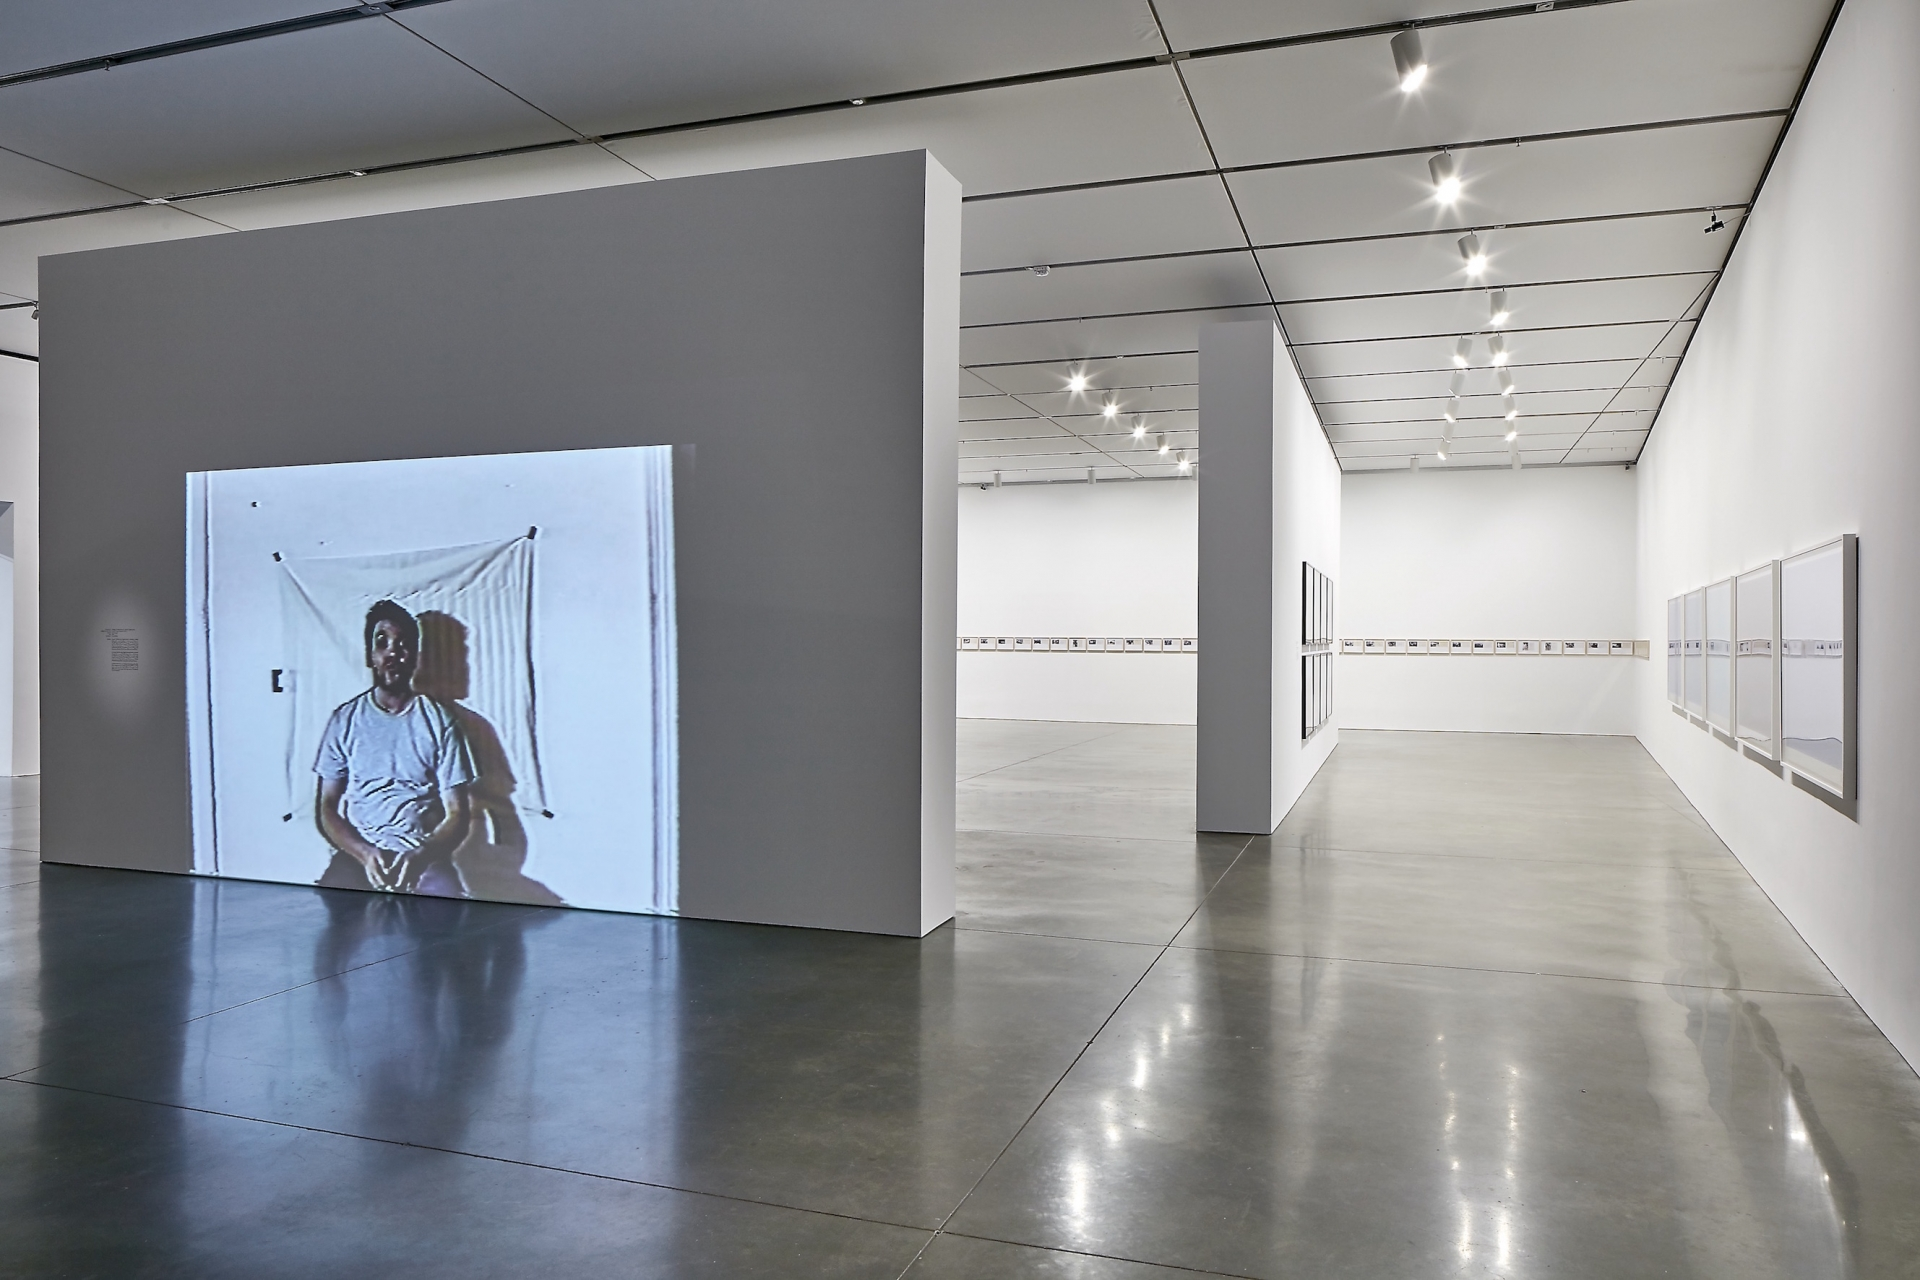 Installation view, The Institute of Contemporary Art, Boston, 2016